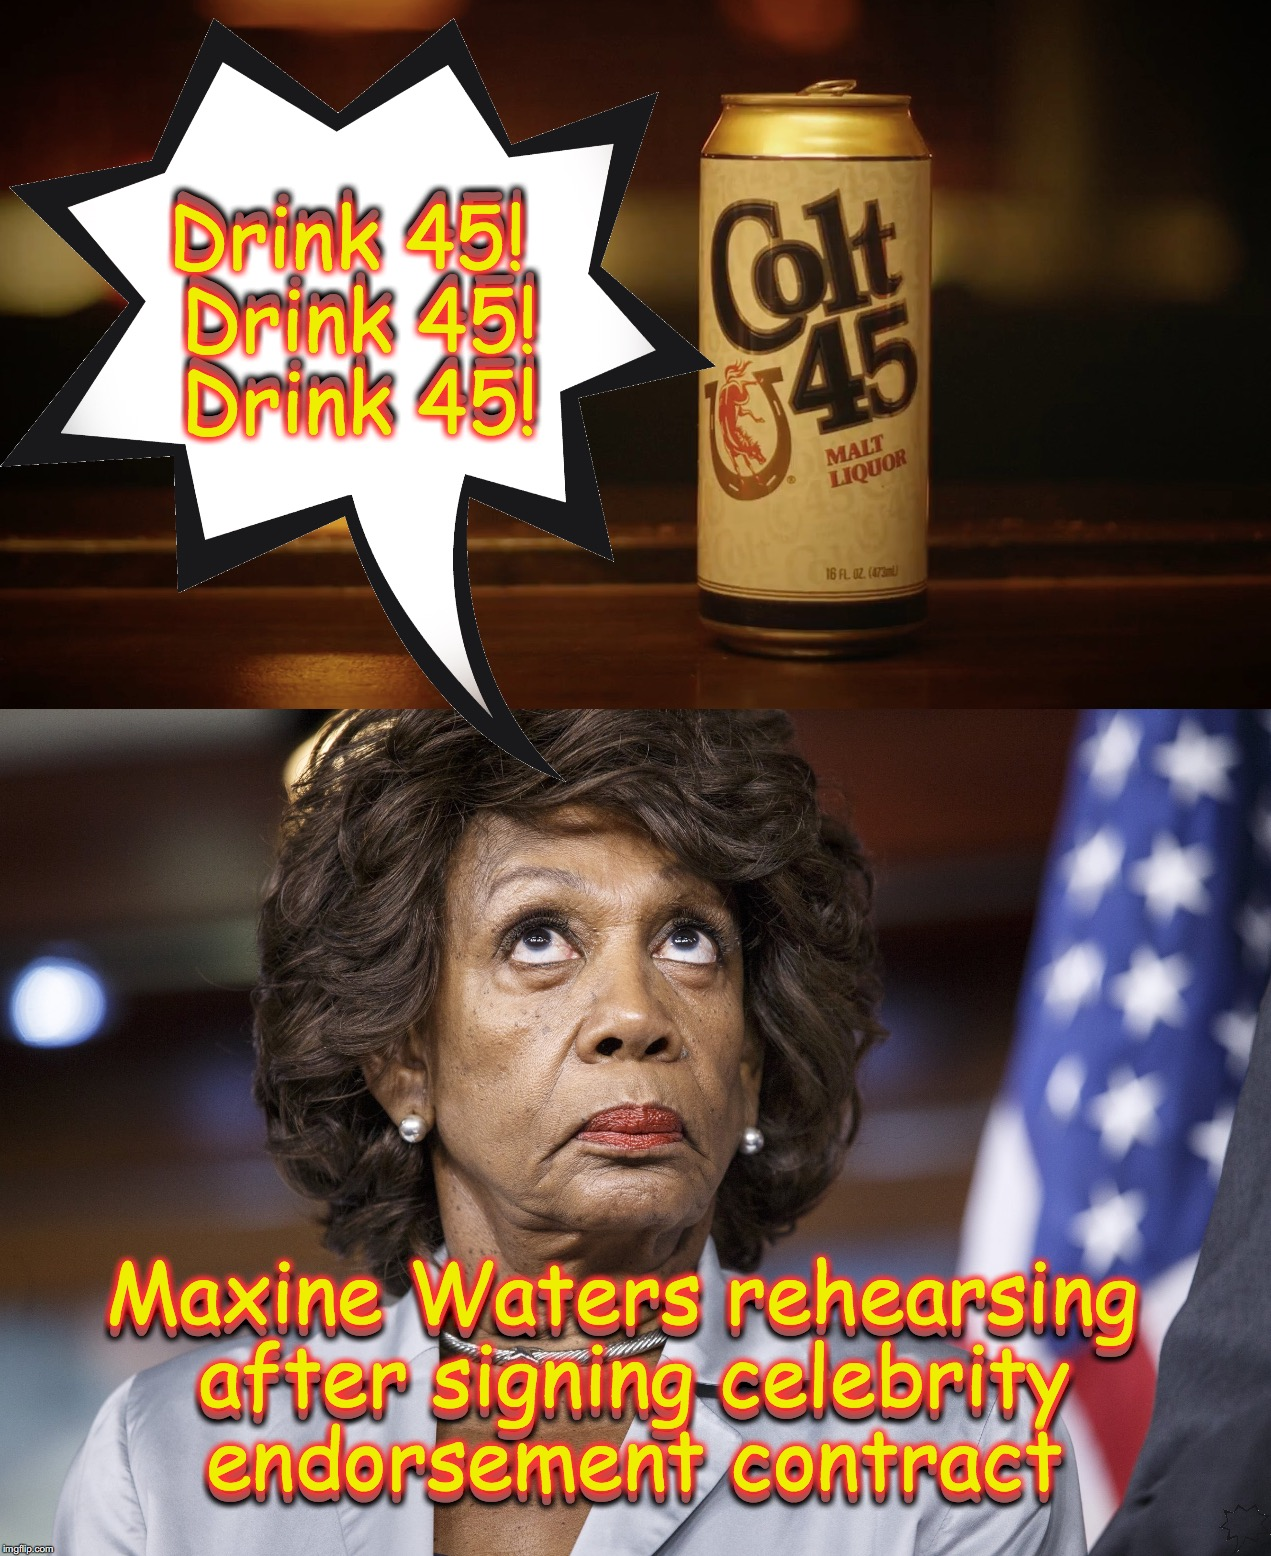 if I were Colt 45, I'd get on this one right away | Drink 45! Drink 45! Drink 45! Drink 45! Drink 45! Drink 45! Maxine Waters rehearsing after signing celebrity endorsement contract Maxine Wat | image tagged in maxine waters | made w/ Imgflip meme maker